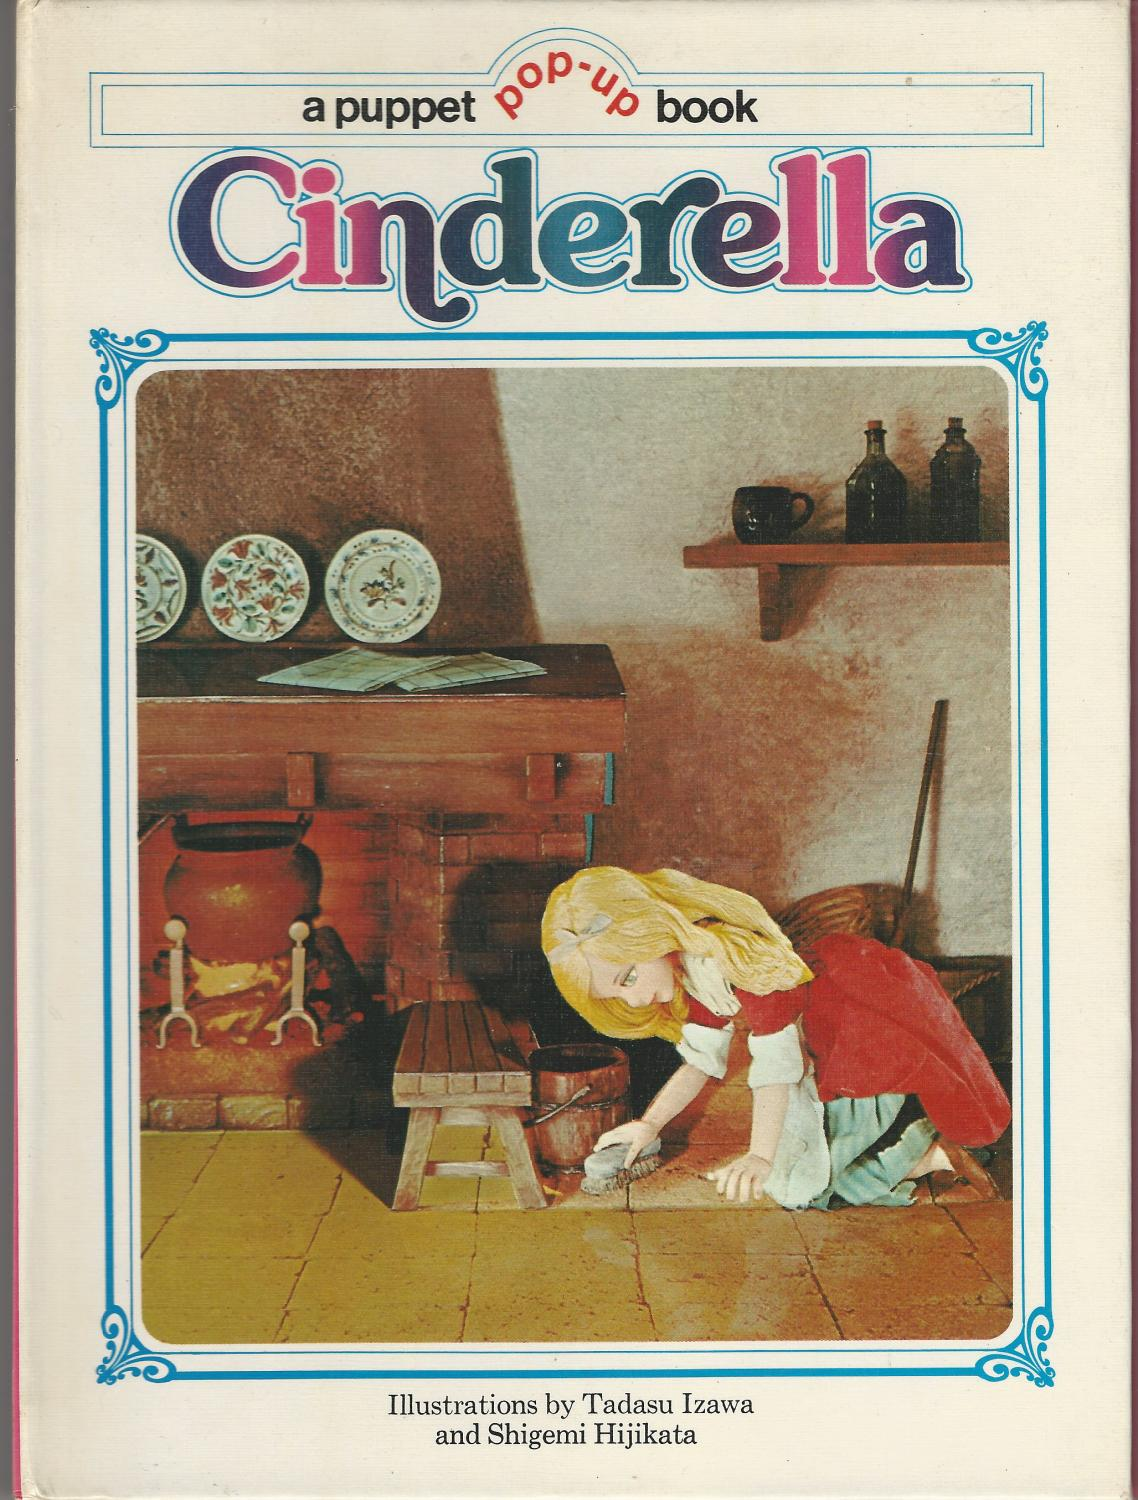 Pop Up Book Cover Cinderella A Puppet Pop Up Book